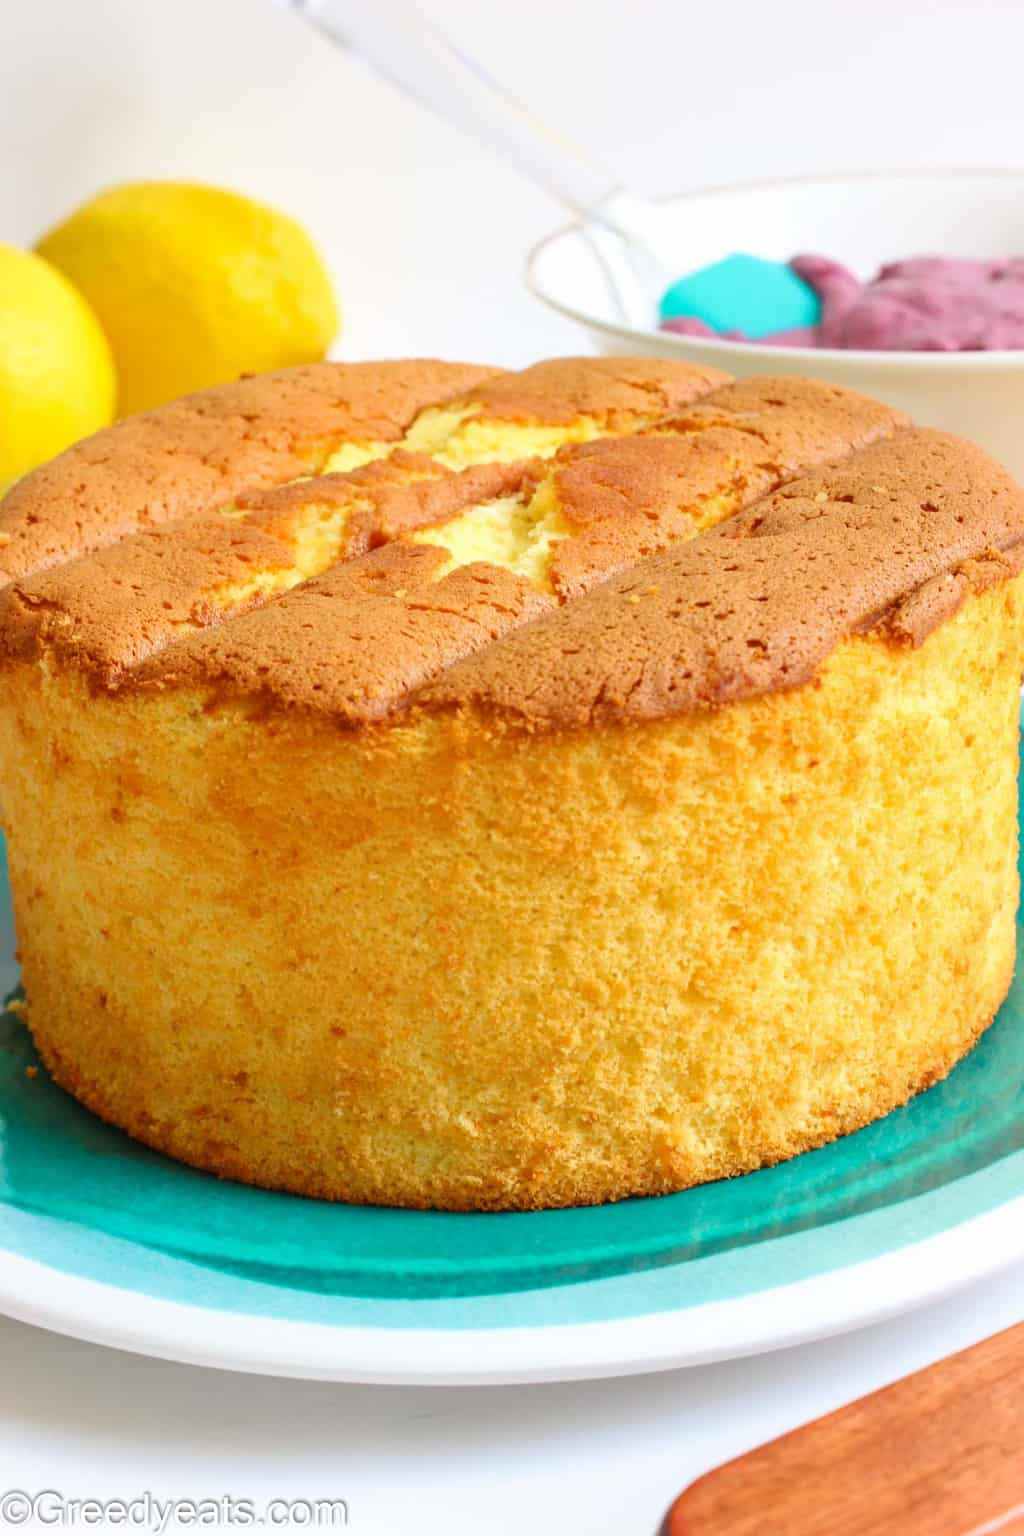 Tall and fluffy Lemon Chiffon Cake baked in a 6 inch pan. Recipe on Greedyeats.com